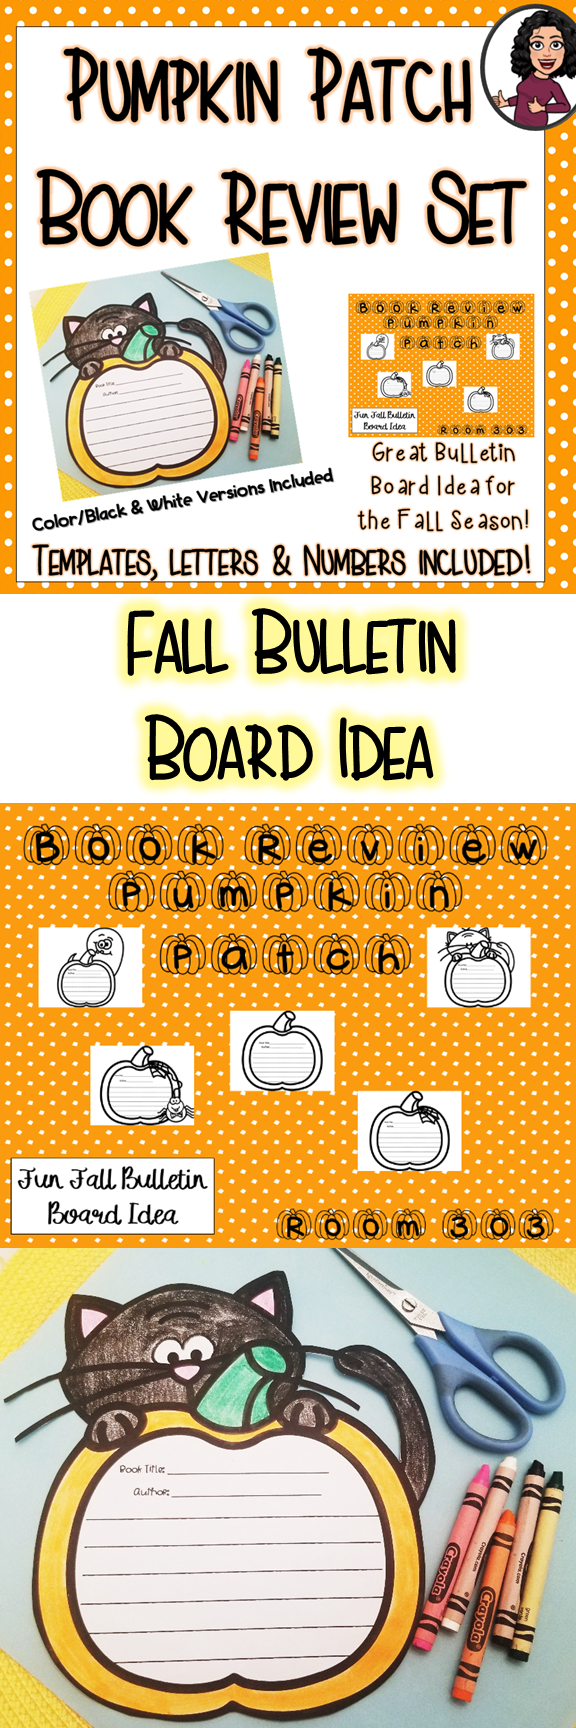 Pumpkin Patch Fall Themed Book Review Bulletin Board Set #pumpkinpatchbulletinboard Fun Book Review Activity that can be used as a Fall themed bulletin board.  5 Templates Letters and numbers included B&W and Colored #pumpkinpatchbulletinboard